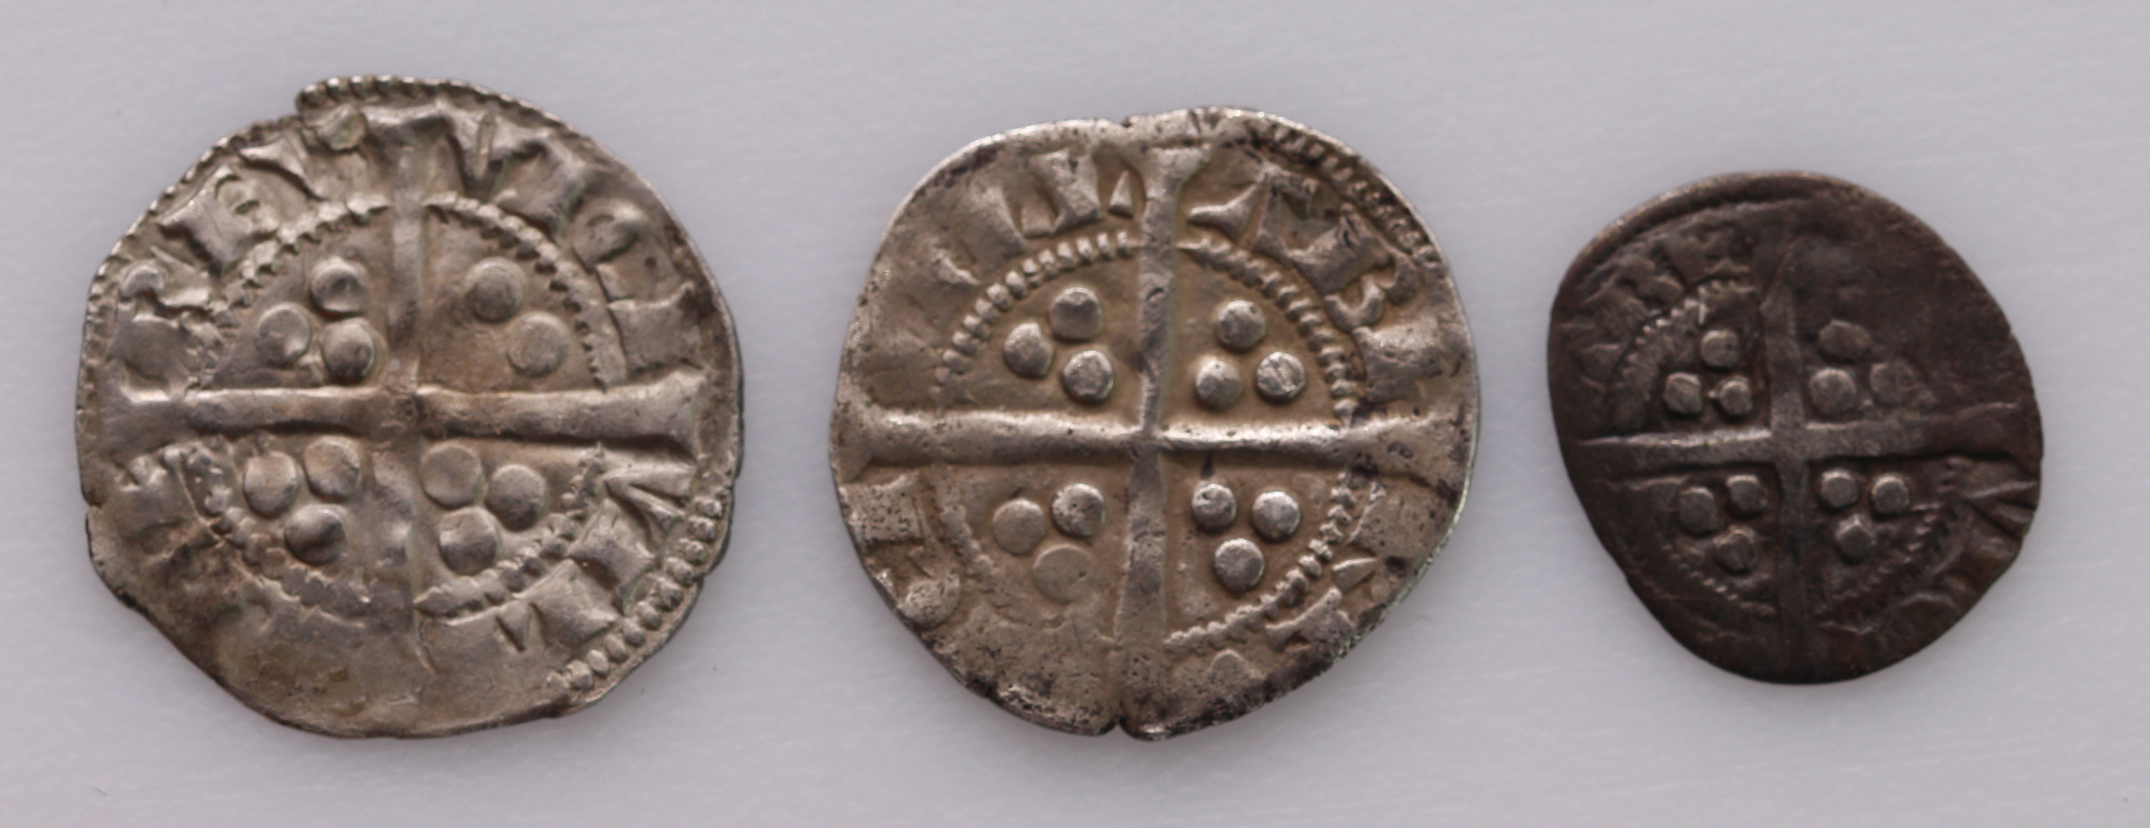 Edward I, Berwick-on-Tweed (3): Penny S1415, Blunt type III, 1.28g, nVF weak in places, small crack; - Image 2 of 2